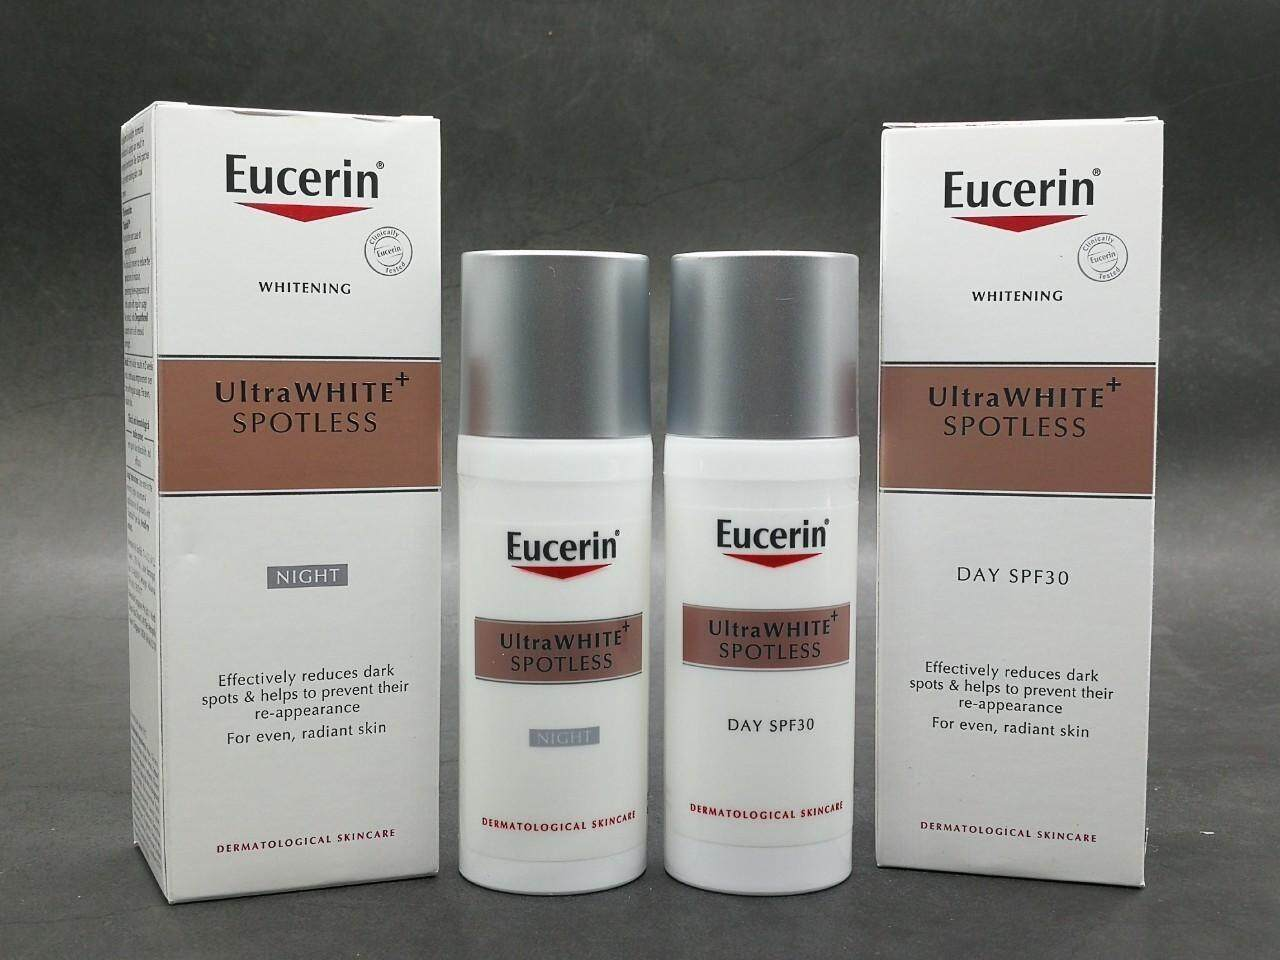 [054] Eucerin Ultrawhite+ Spotless Day Fluid Spf30 / Night Fluid 50ml.